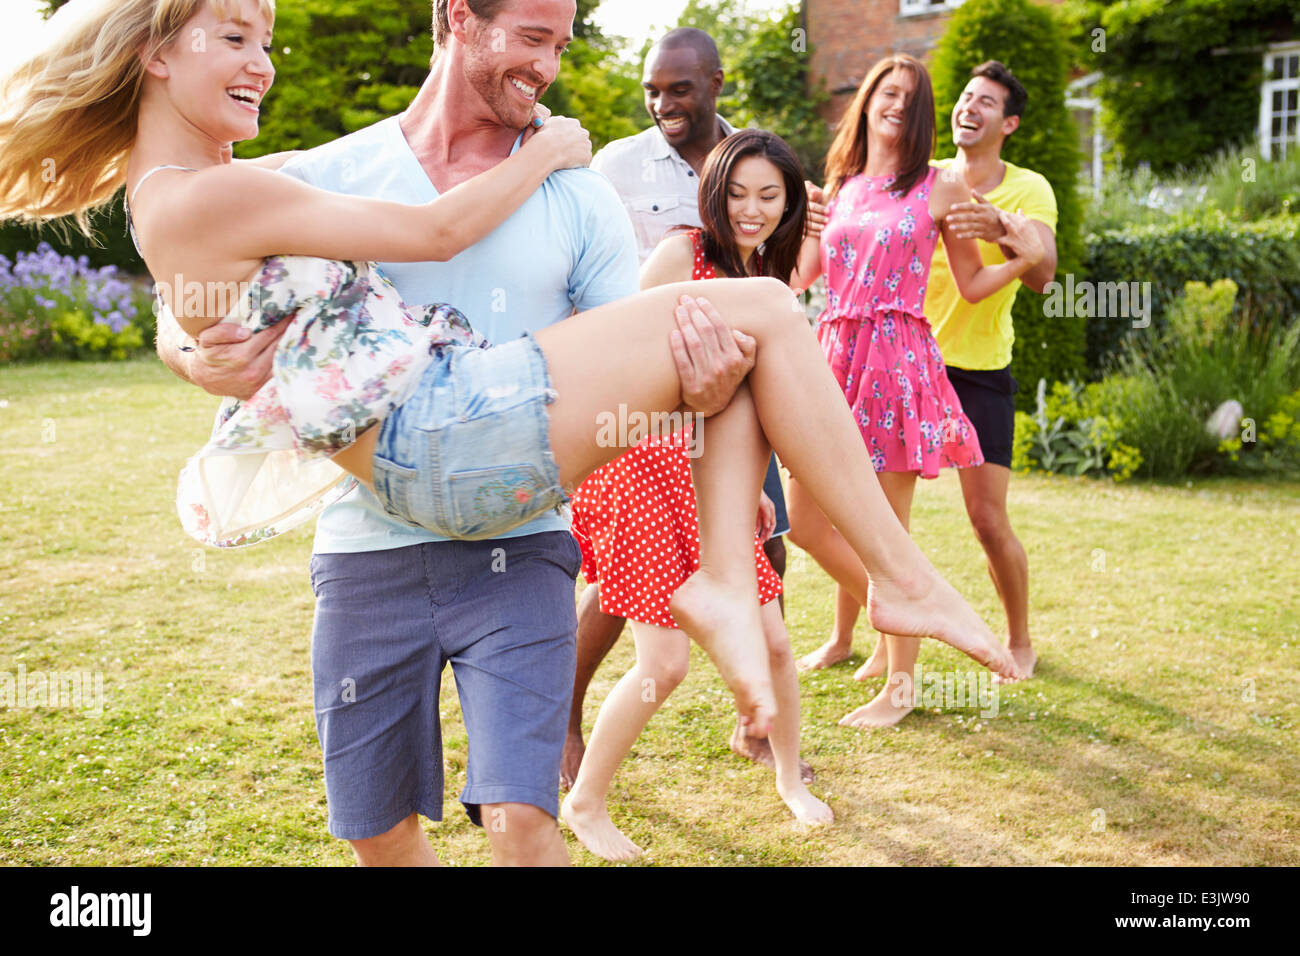 Friends Relaxing In Summer Garden Together - Stock Image